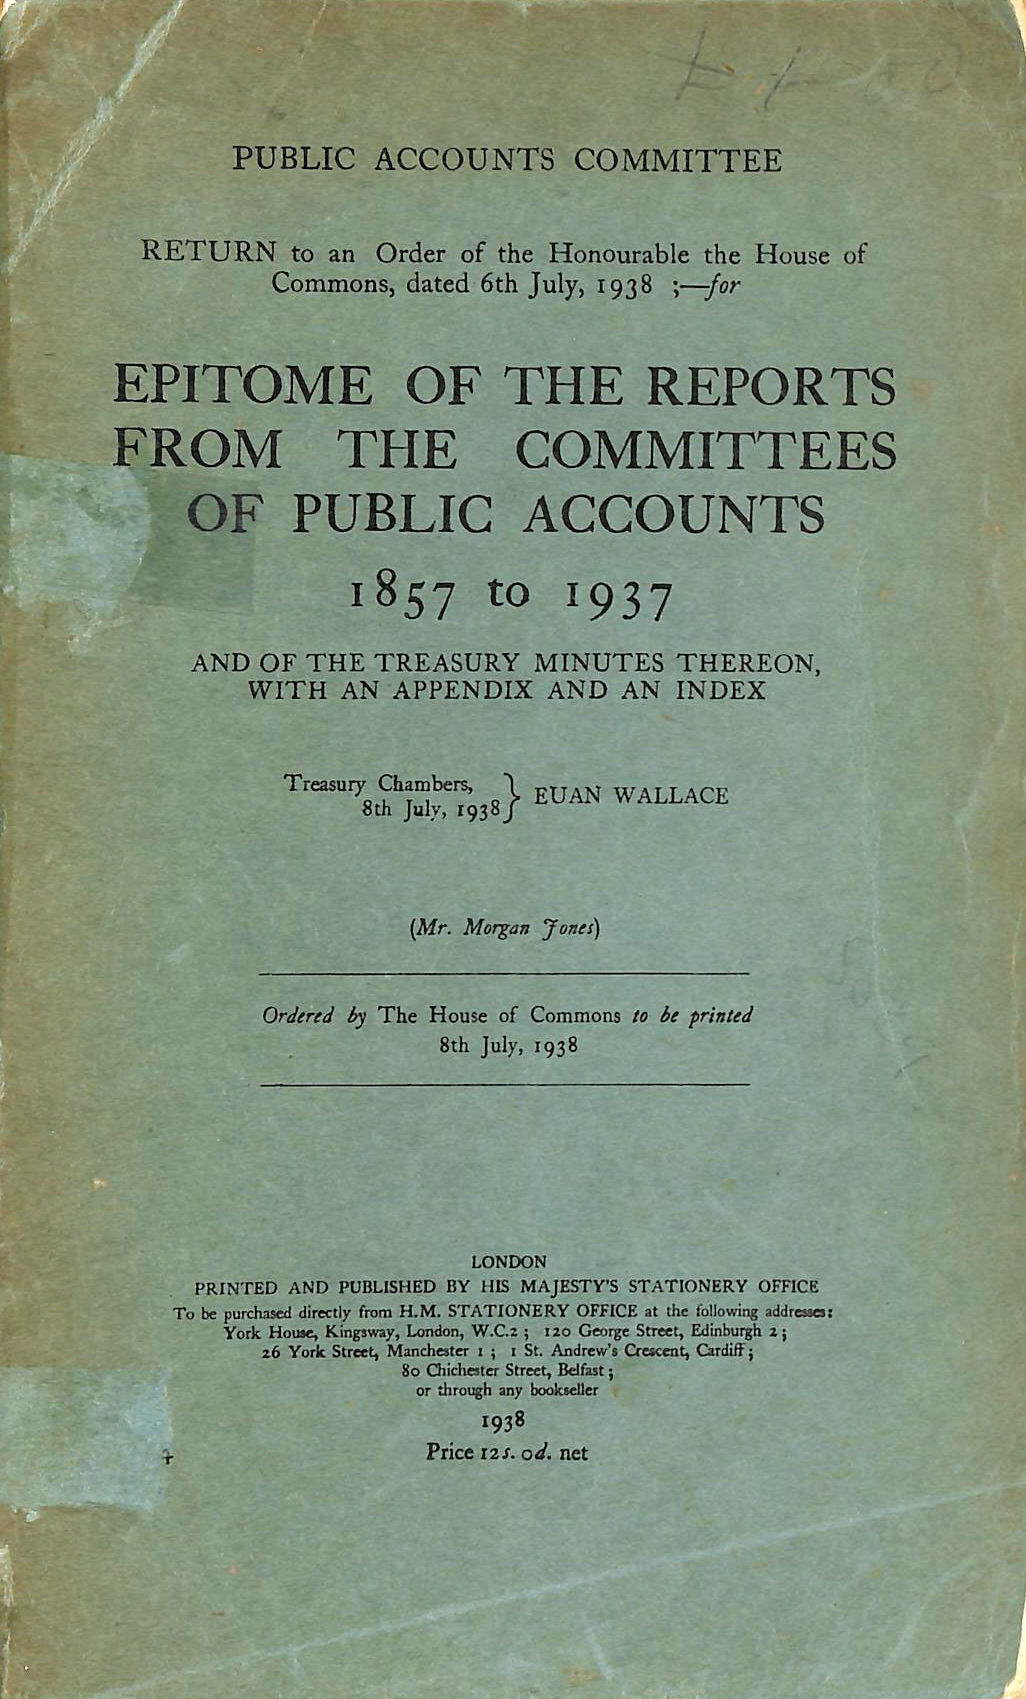 Image for Epitome Of The Reports From The Committees Of Public Accounts 1857 to 1937